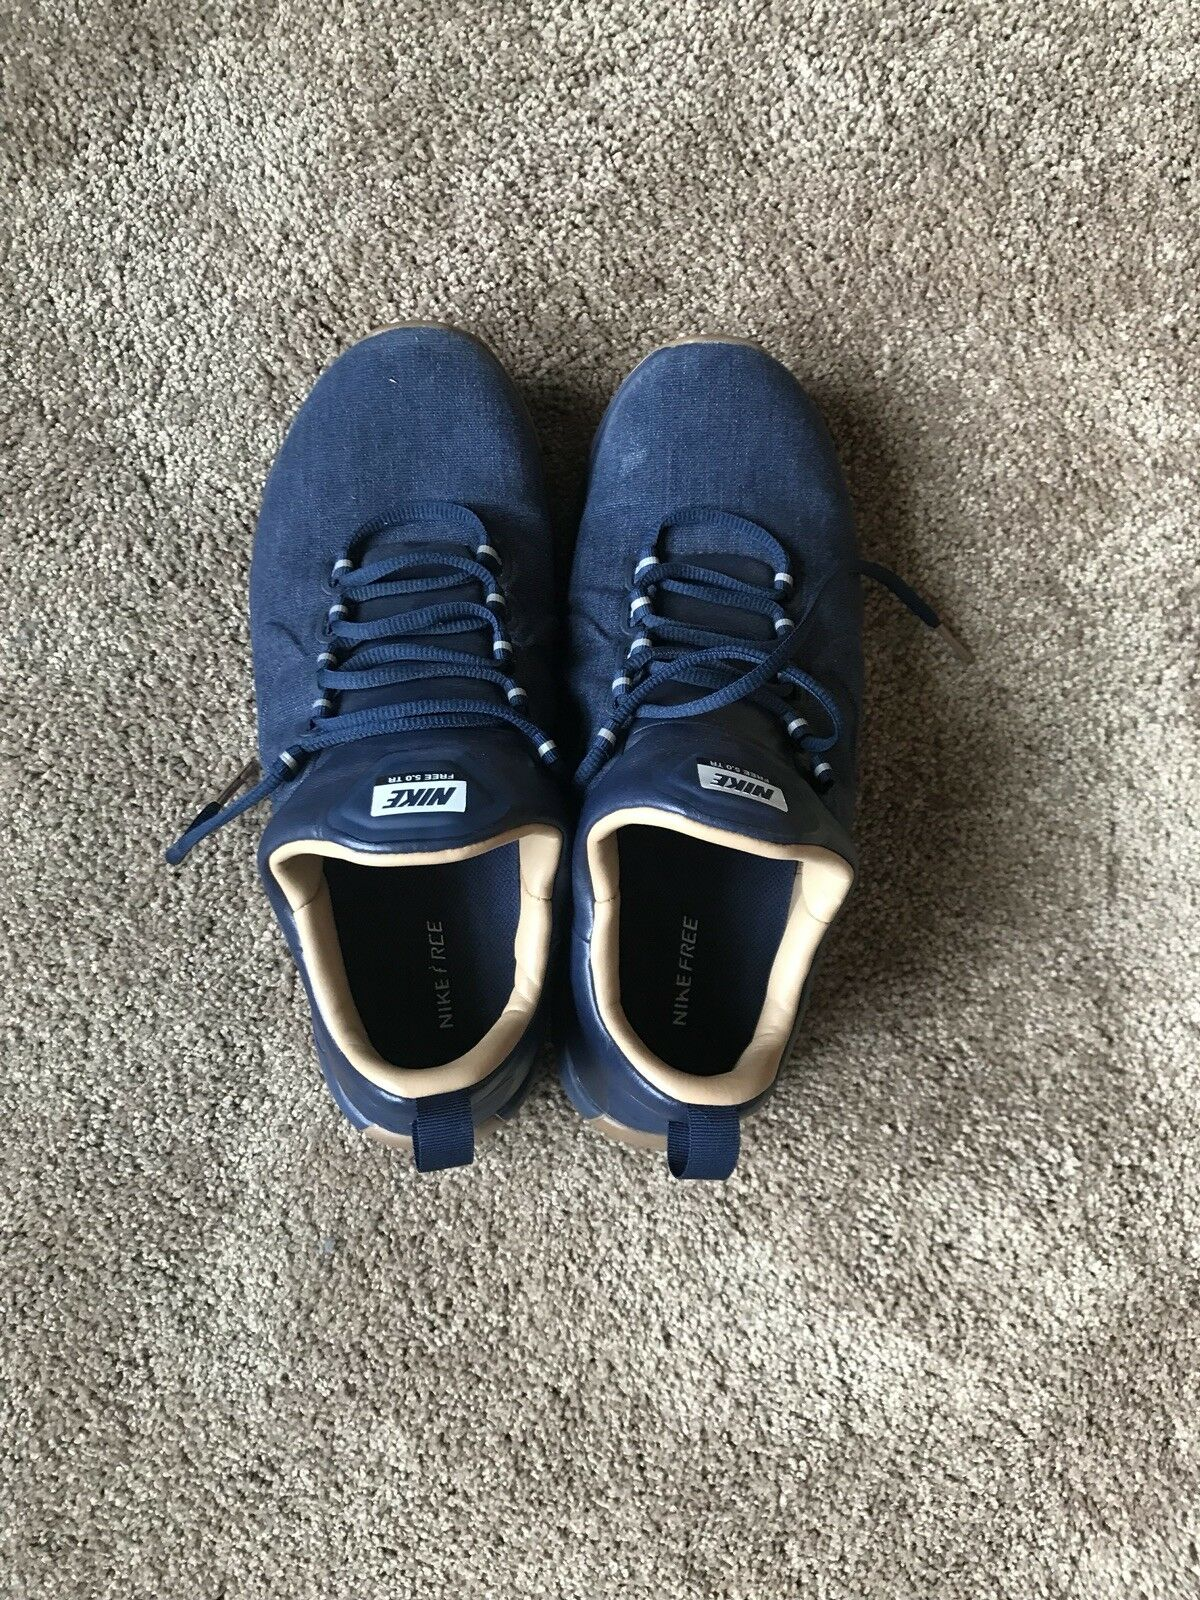 New shoes for men and women, limited time discount Nike Free 5.0 Denim Navy Blue Shoes Sz. 10.5